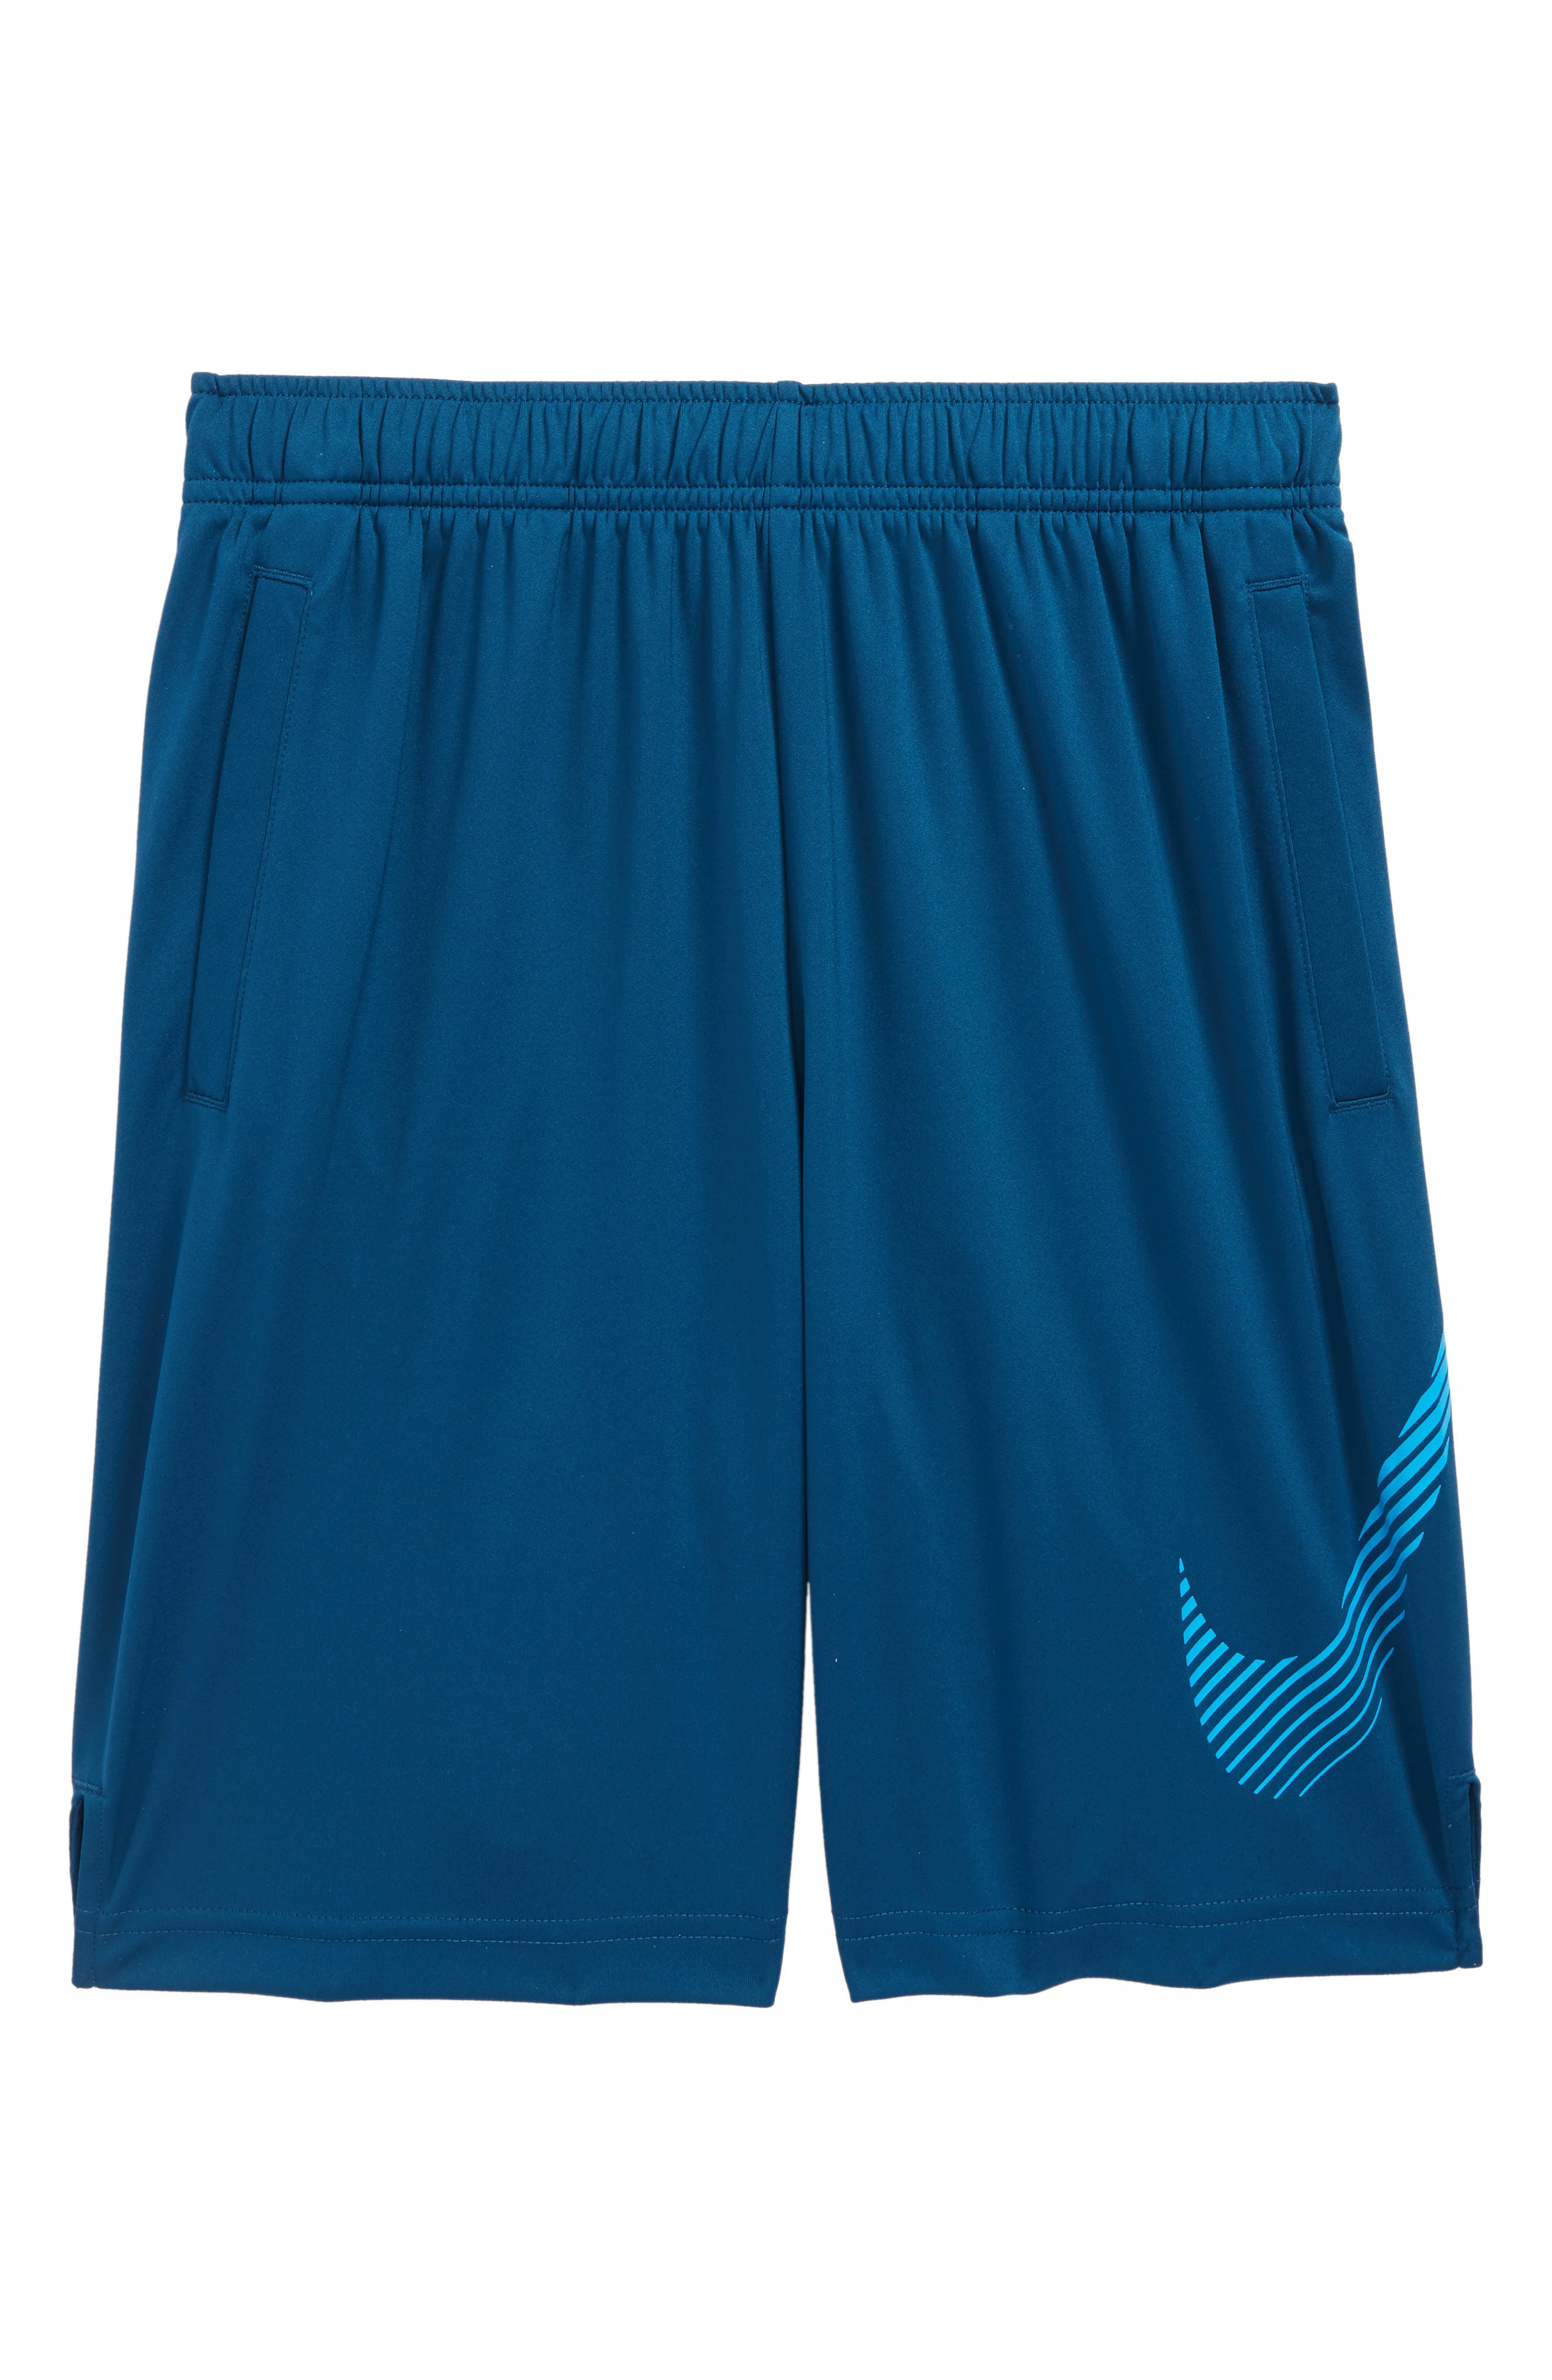 Dry Training Shorts,                         Main,                         color, Blue Force/ Equator Blue